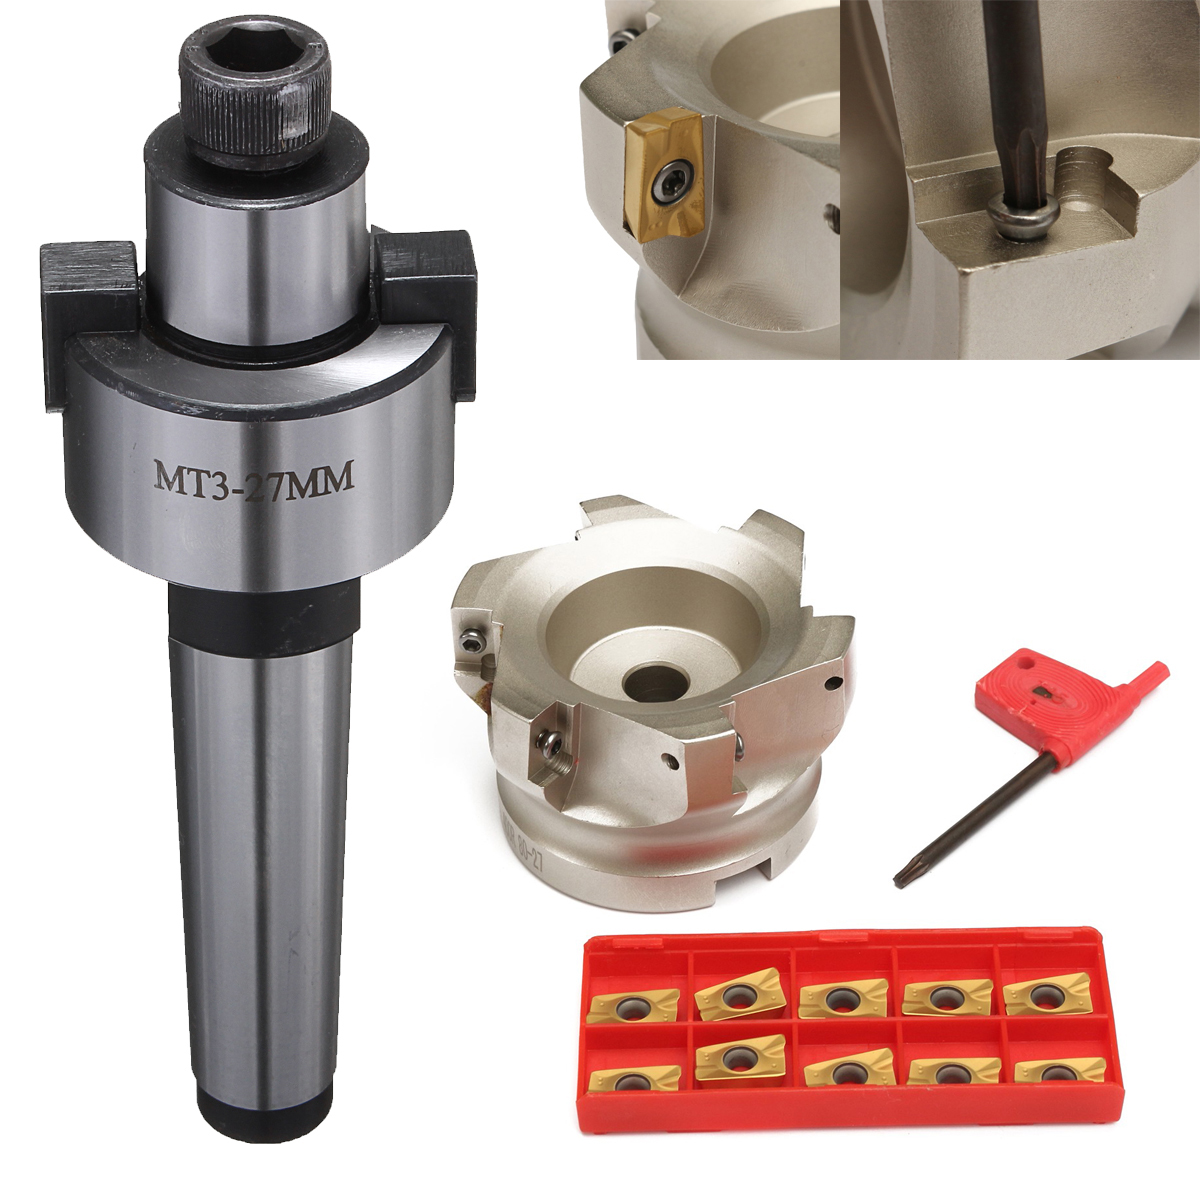 10pcs APMT1604PDER Inserts + 80mm 400R-80-27 Face End Mill Cutter + MT3 Morse Taper + T15 Wrench mitsubishi 100% mds r v1 80 mds r v1 80